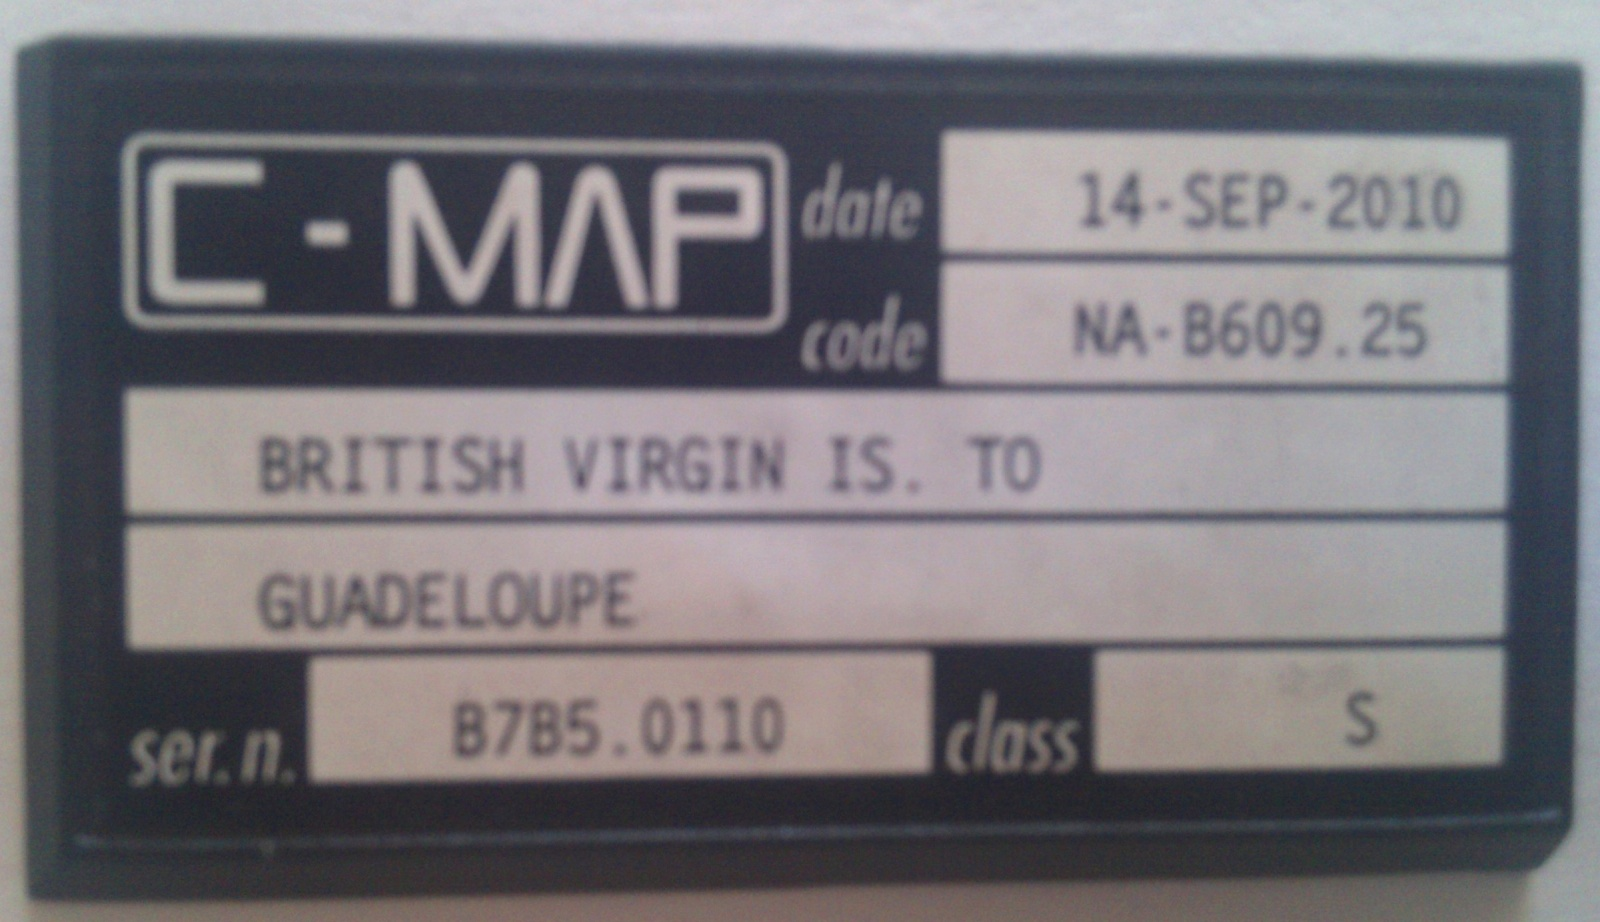 Click image for larger version  Name:C - Map British Virgin Is. to Guadeloupe.jpg Views:119 Size:324.3 KB ID:41393